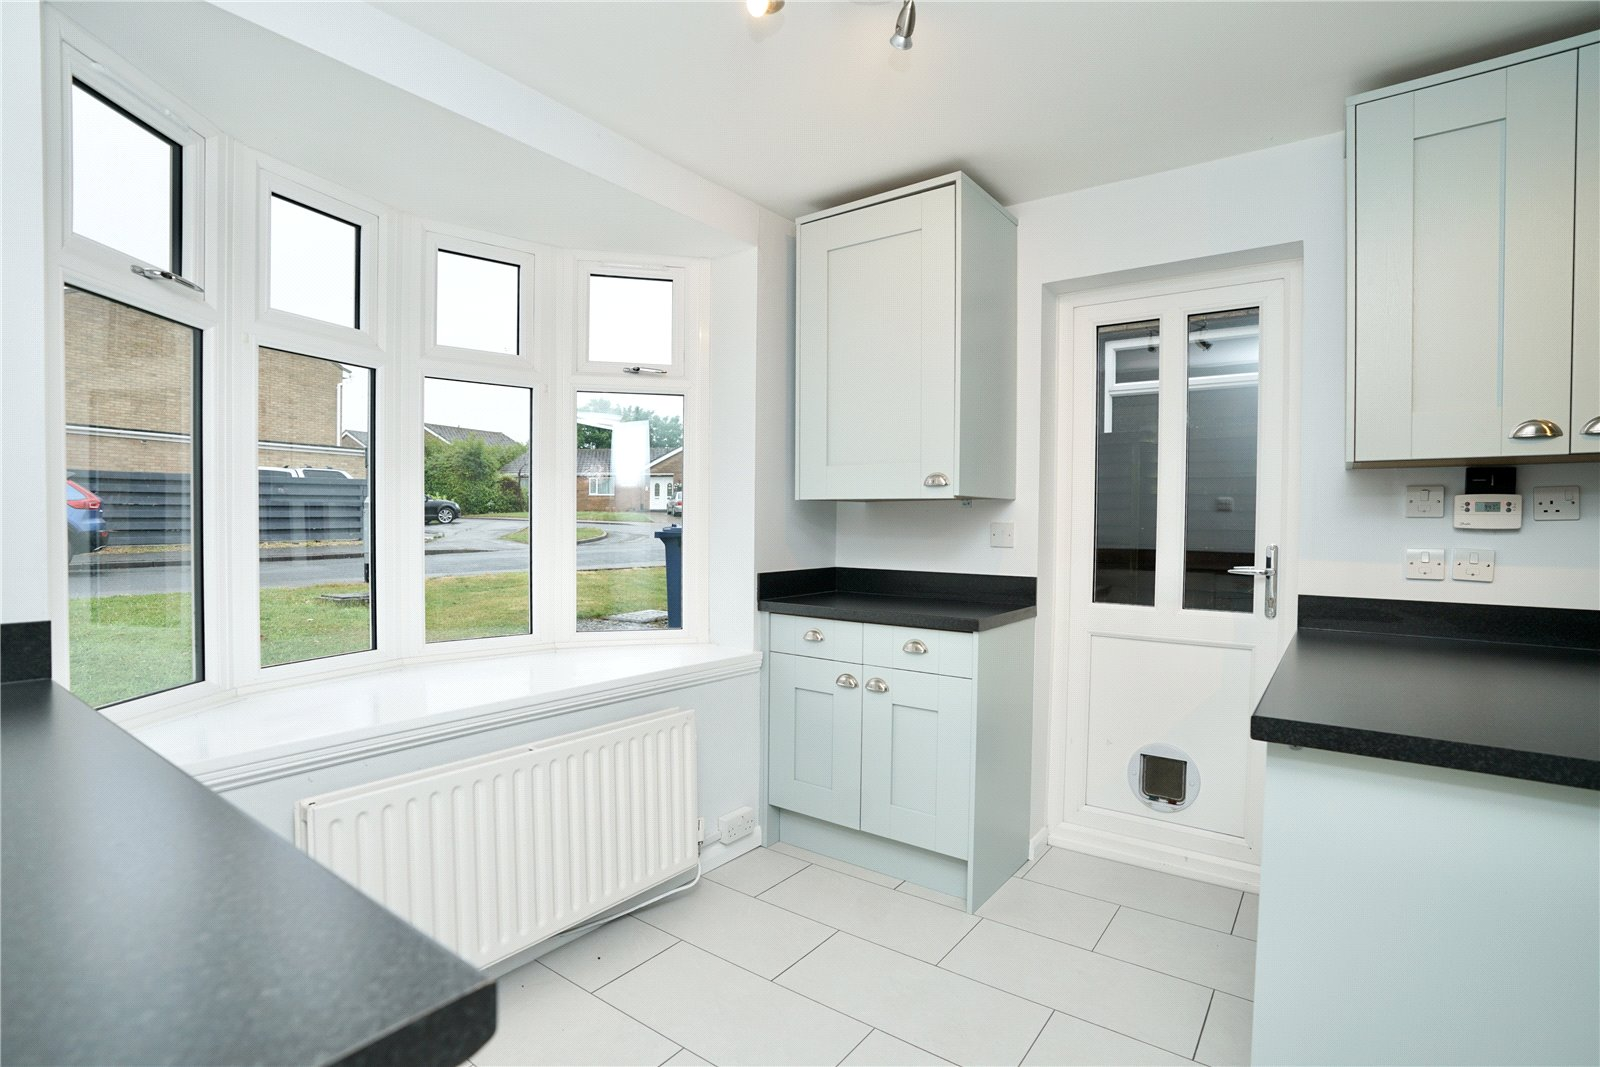 4 bed house for sale in Lakeside Close, Perry 2